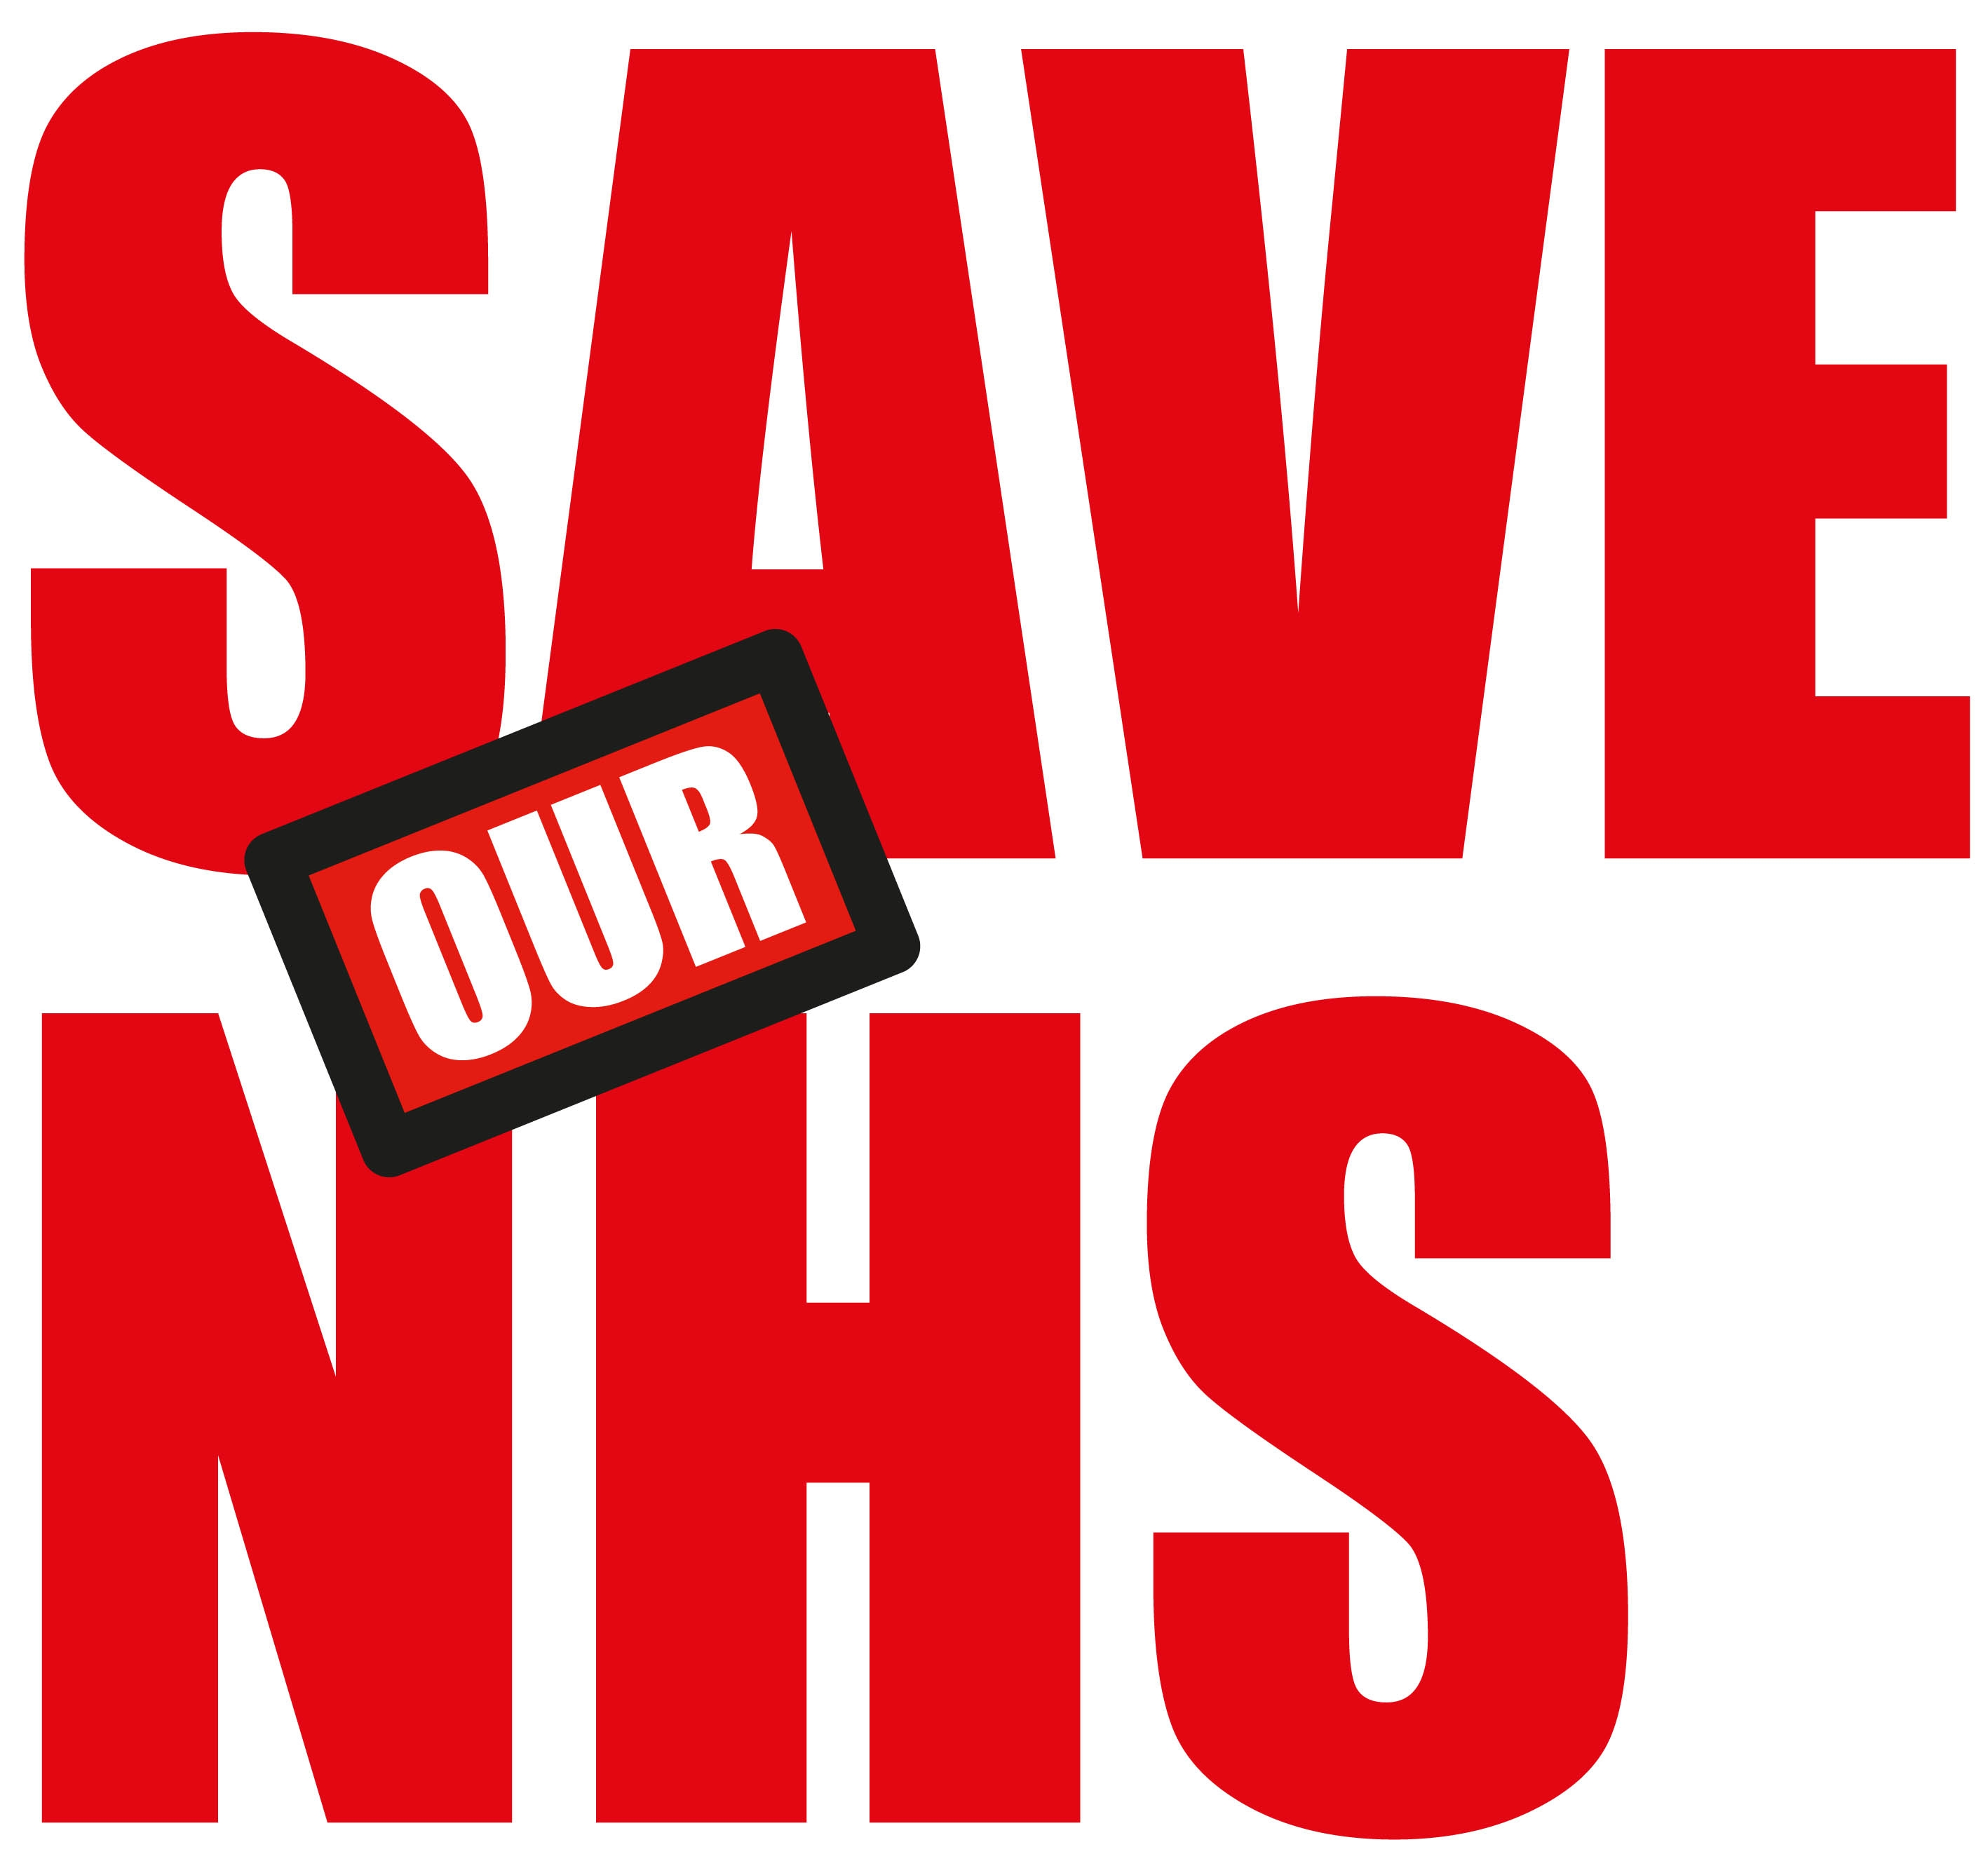 Save_our_NHS_logo11-5179.JPG